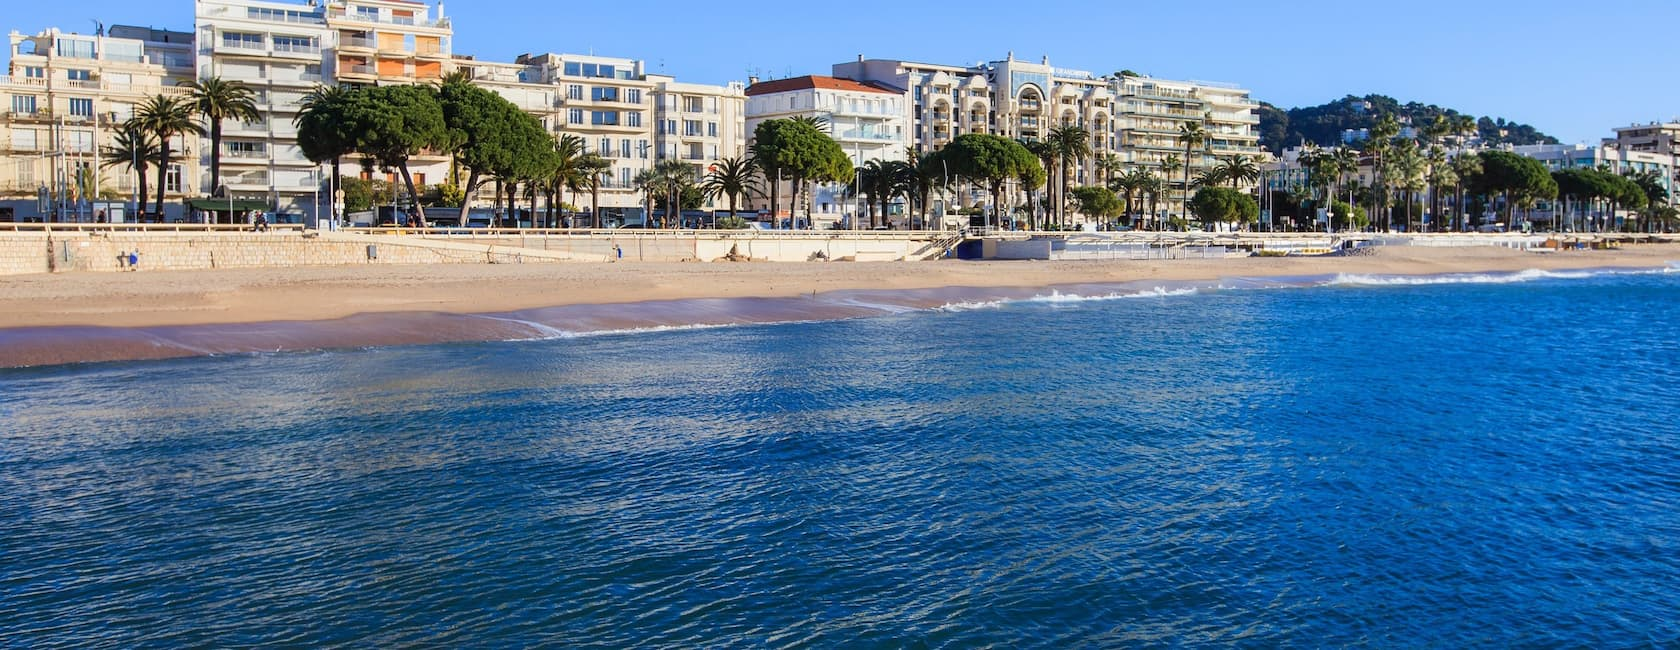 Vacation rentals in Cannes